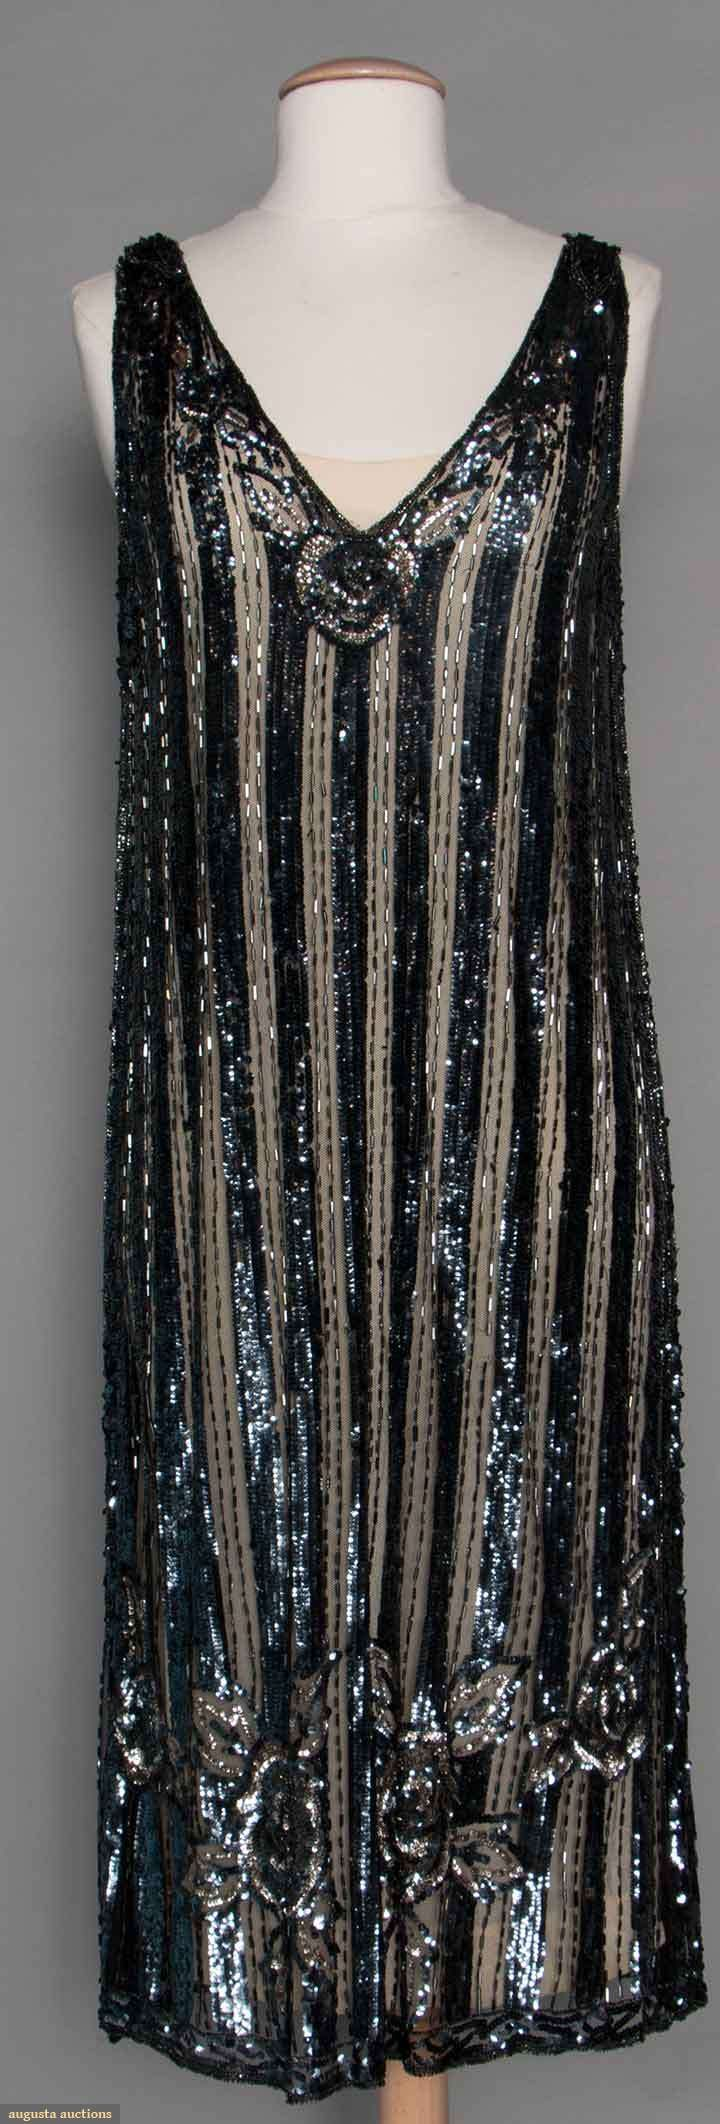 Sequined Flapper Dress, 1920s, Augusta Auctions, November 12, 2014, Lot 208